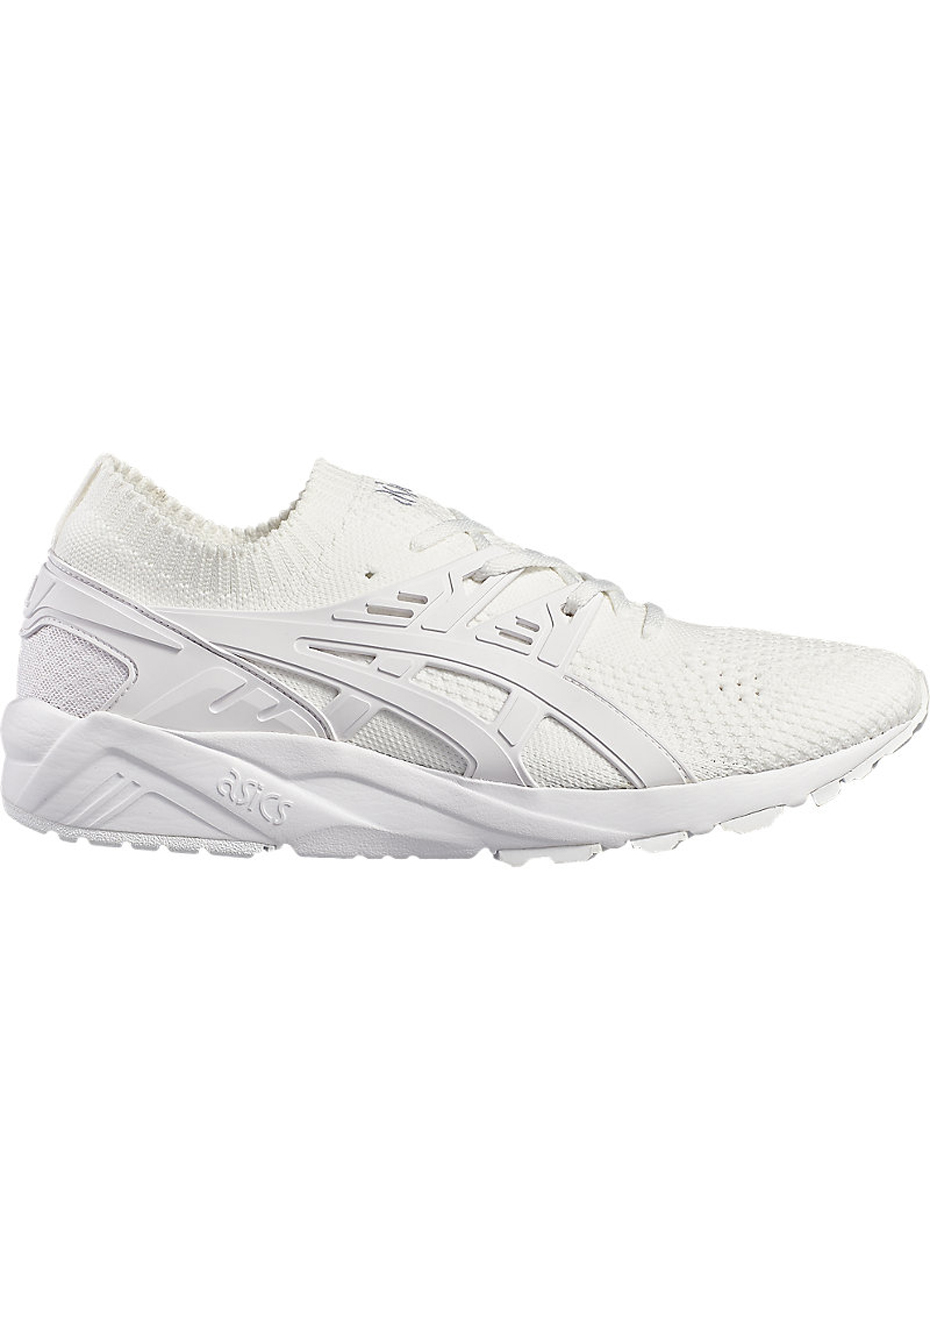 Asics Gel Kayano Trainer Knit granate